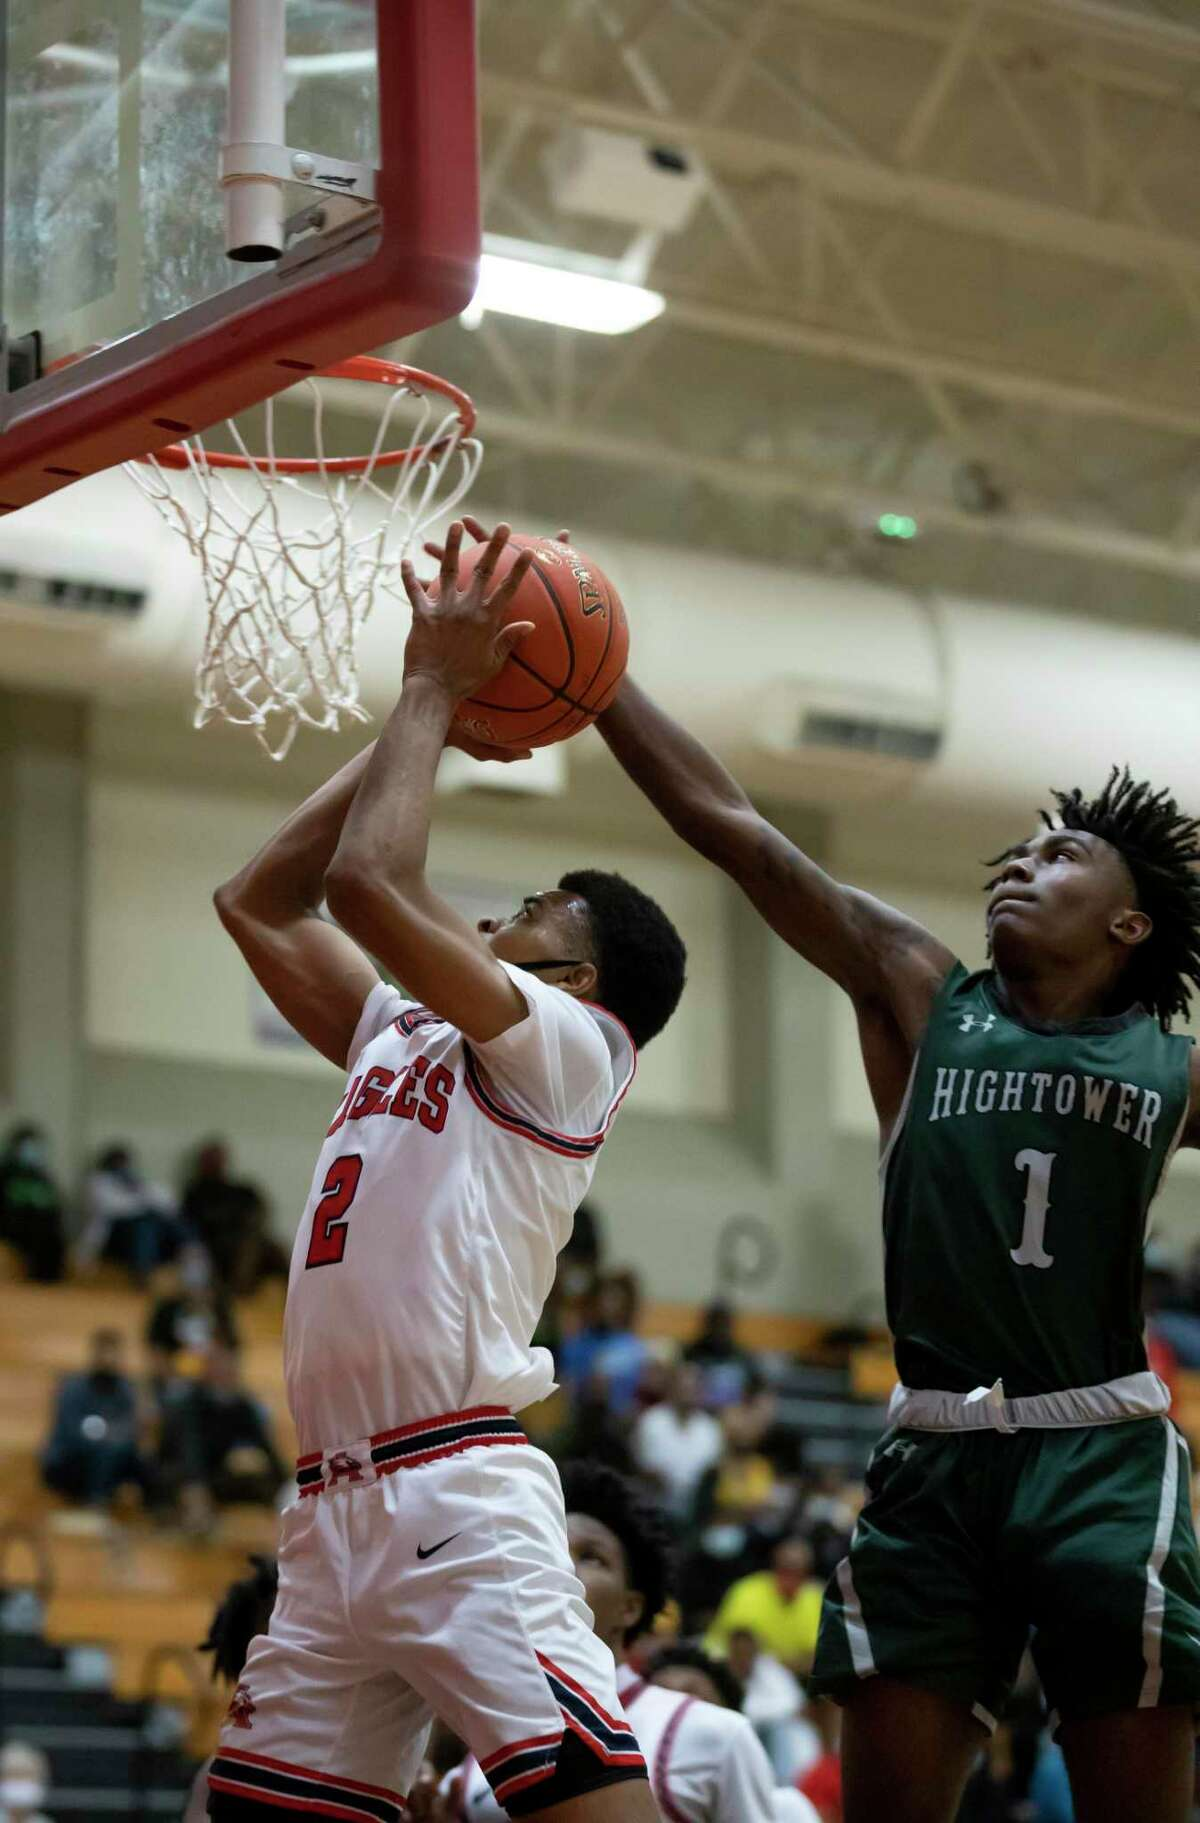 Fort Bend point guard Zackary Guidry (1) pressures Atascocita Angel Johnson (2) from scoring during the fourth quarter of a non-district basketball game at Atascocita High School, Wednesday, Nov. 25, 2020, in Atascocita.